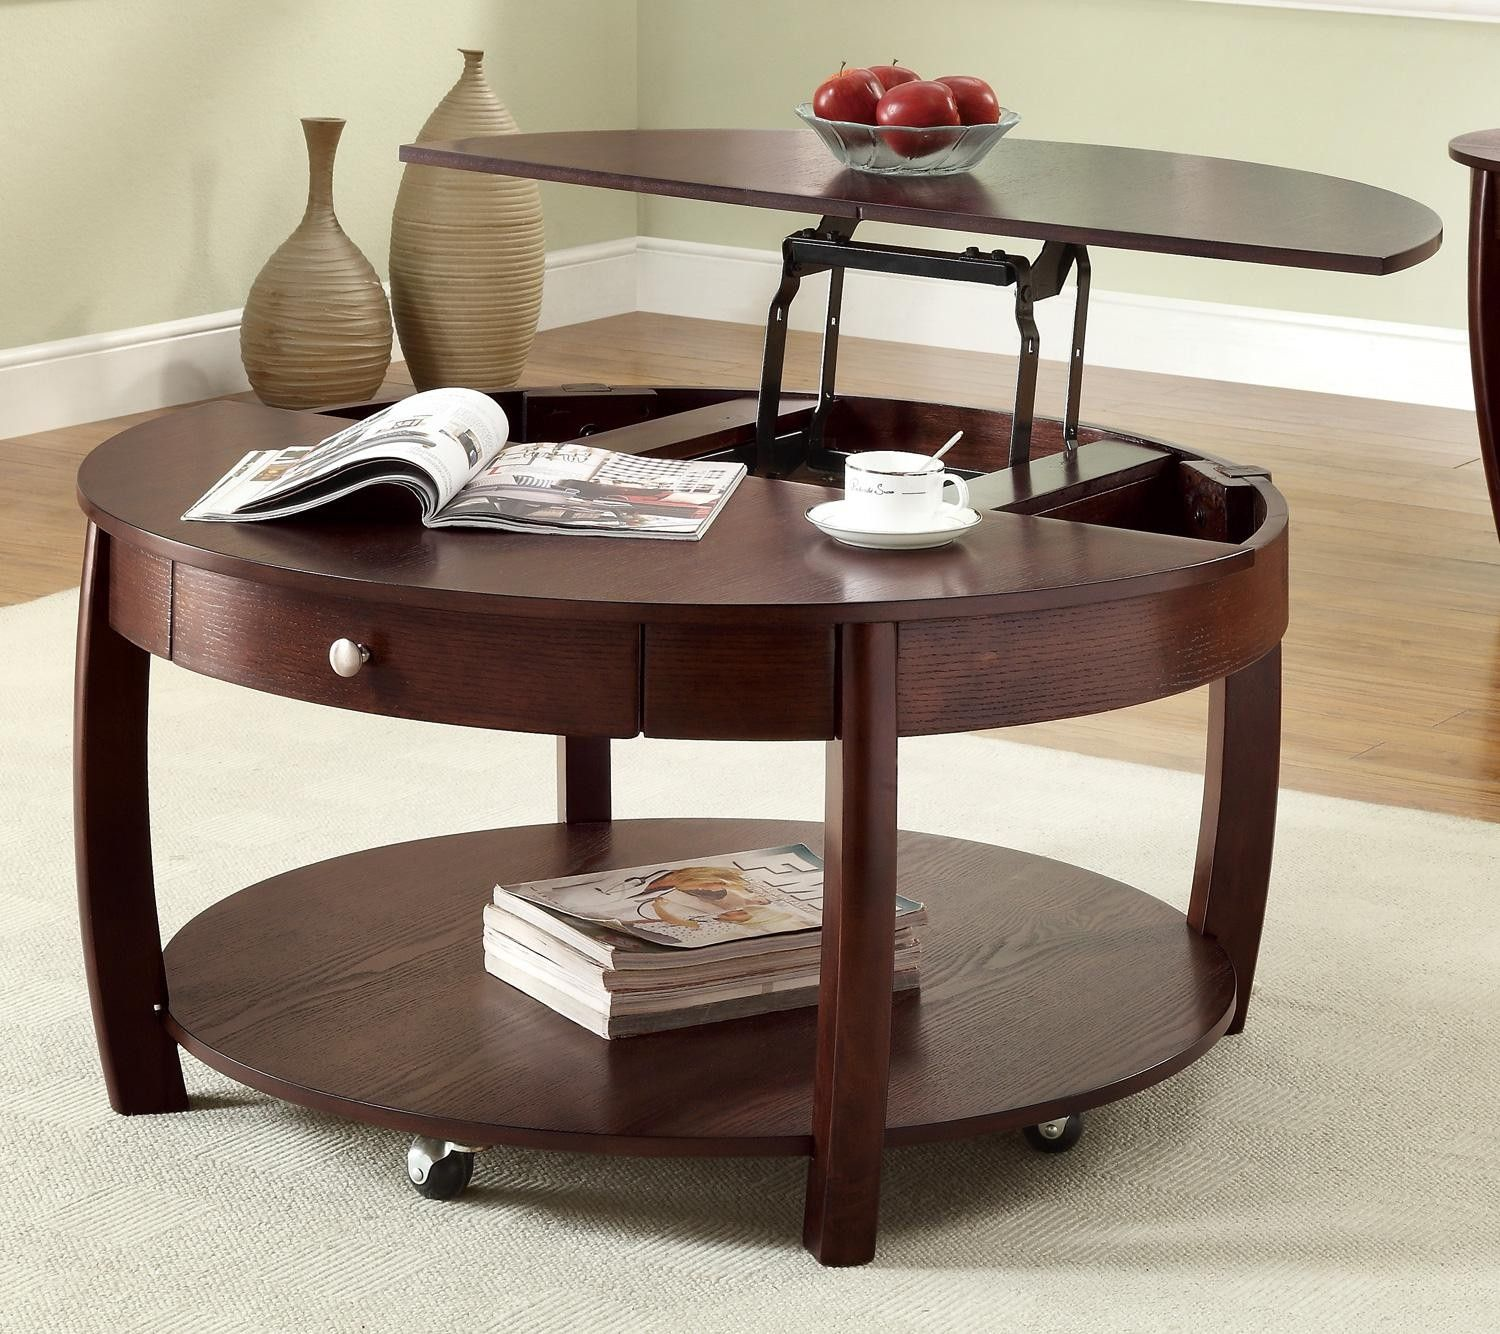 Narrow Lift Top Coffee Table.Round Glass Top Coffee Tables Charming Narrow Coffee Tables Aand End